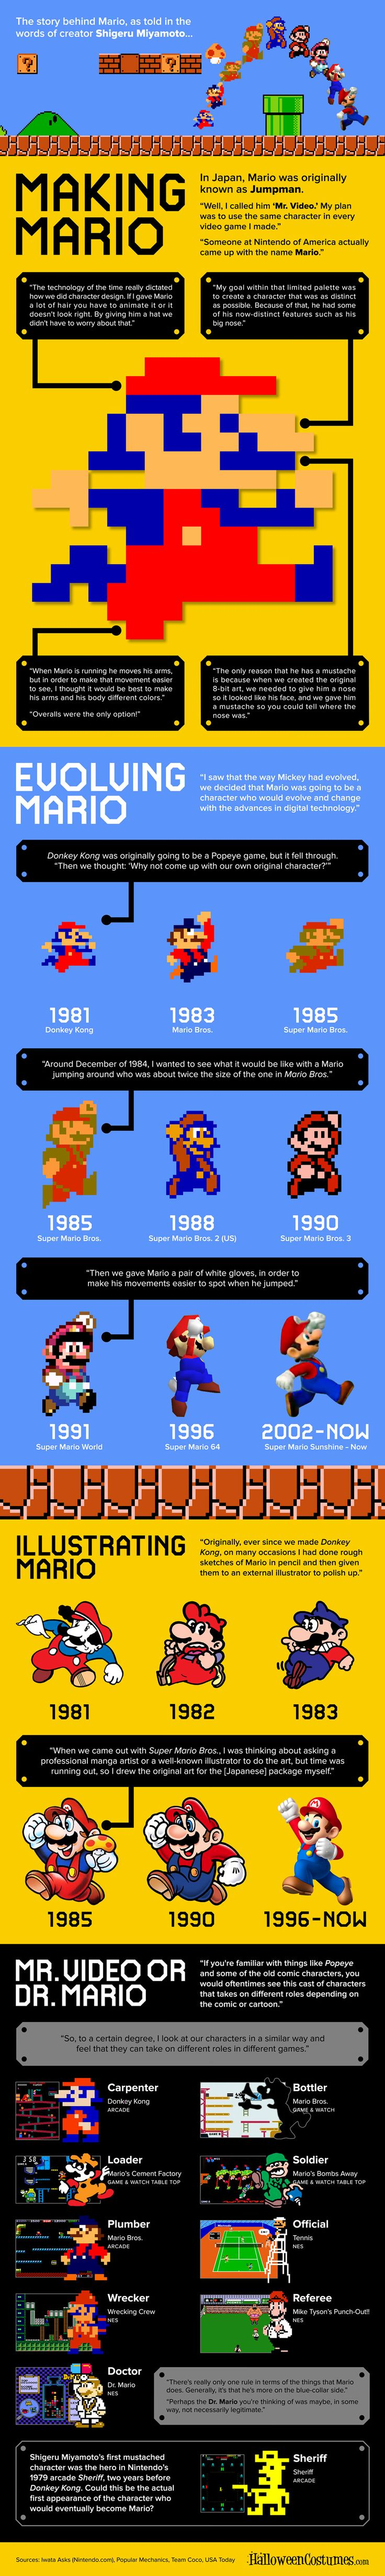 Making Mario: The Creation and Evolution of Mario [Infographic]